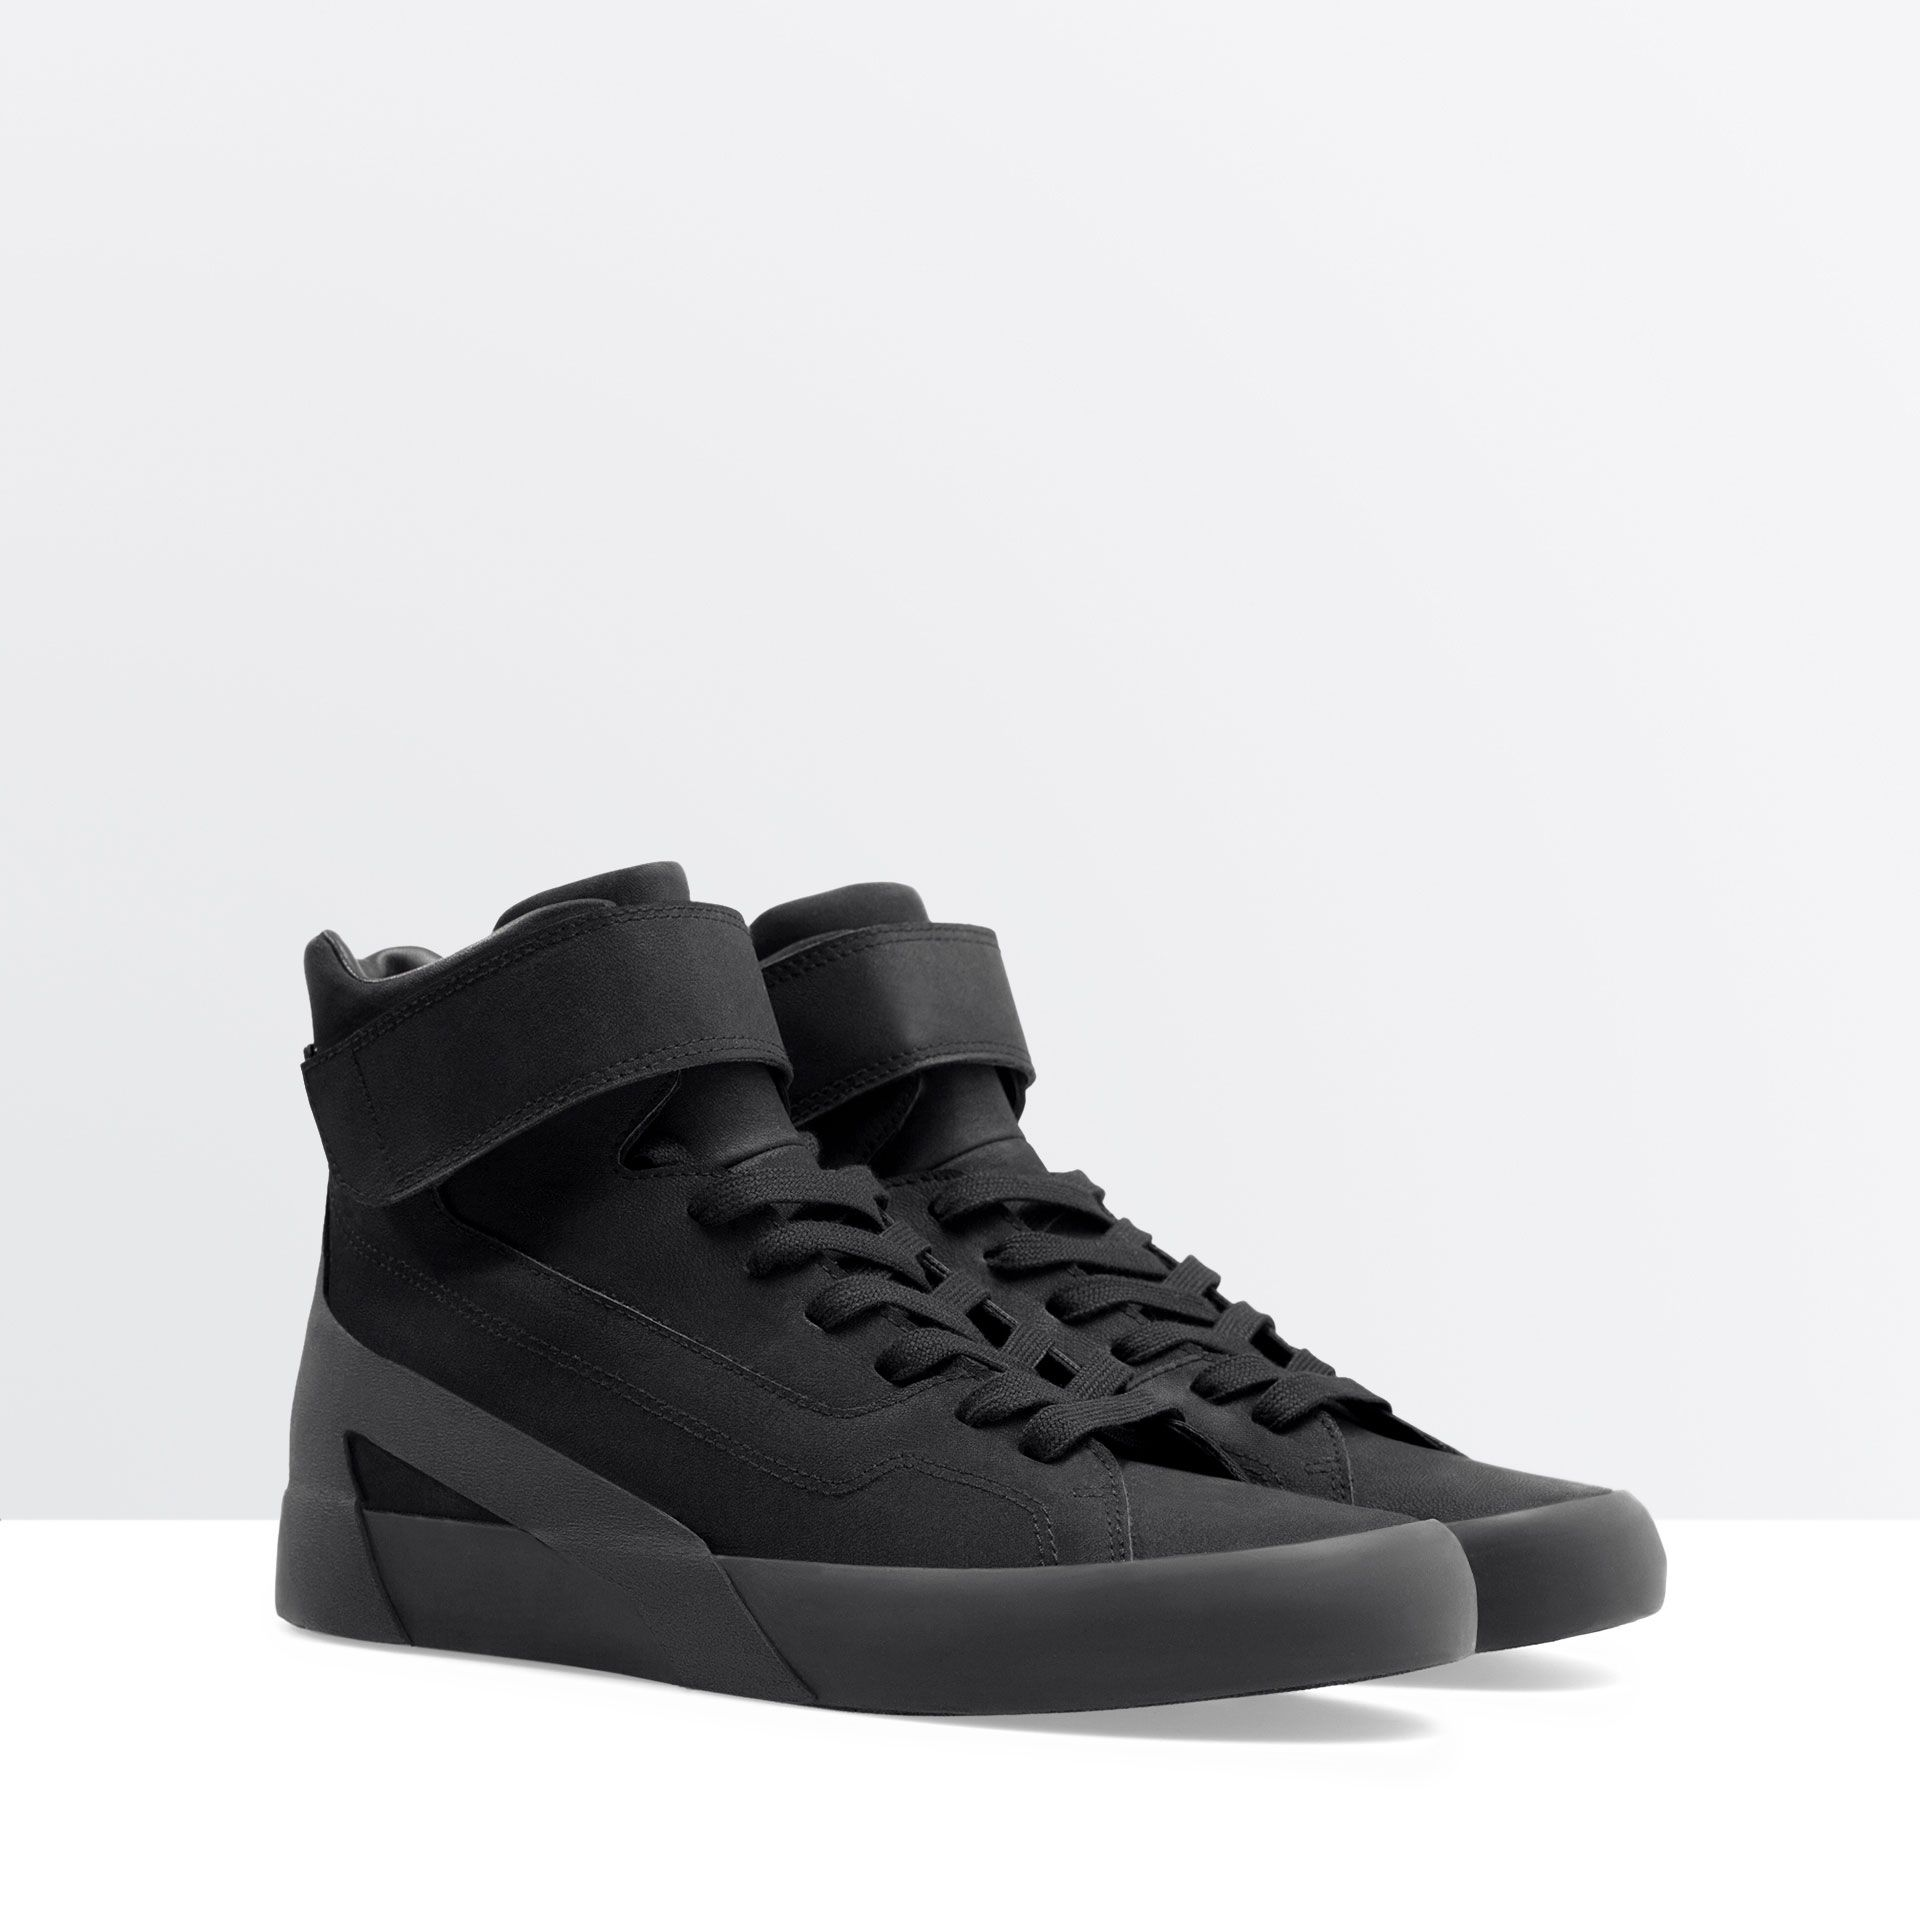 Image 3 of HIGH TOPS WITH VELCRO from Zara | Sneakers men